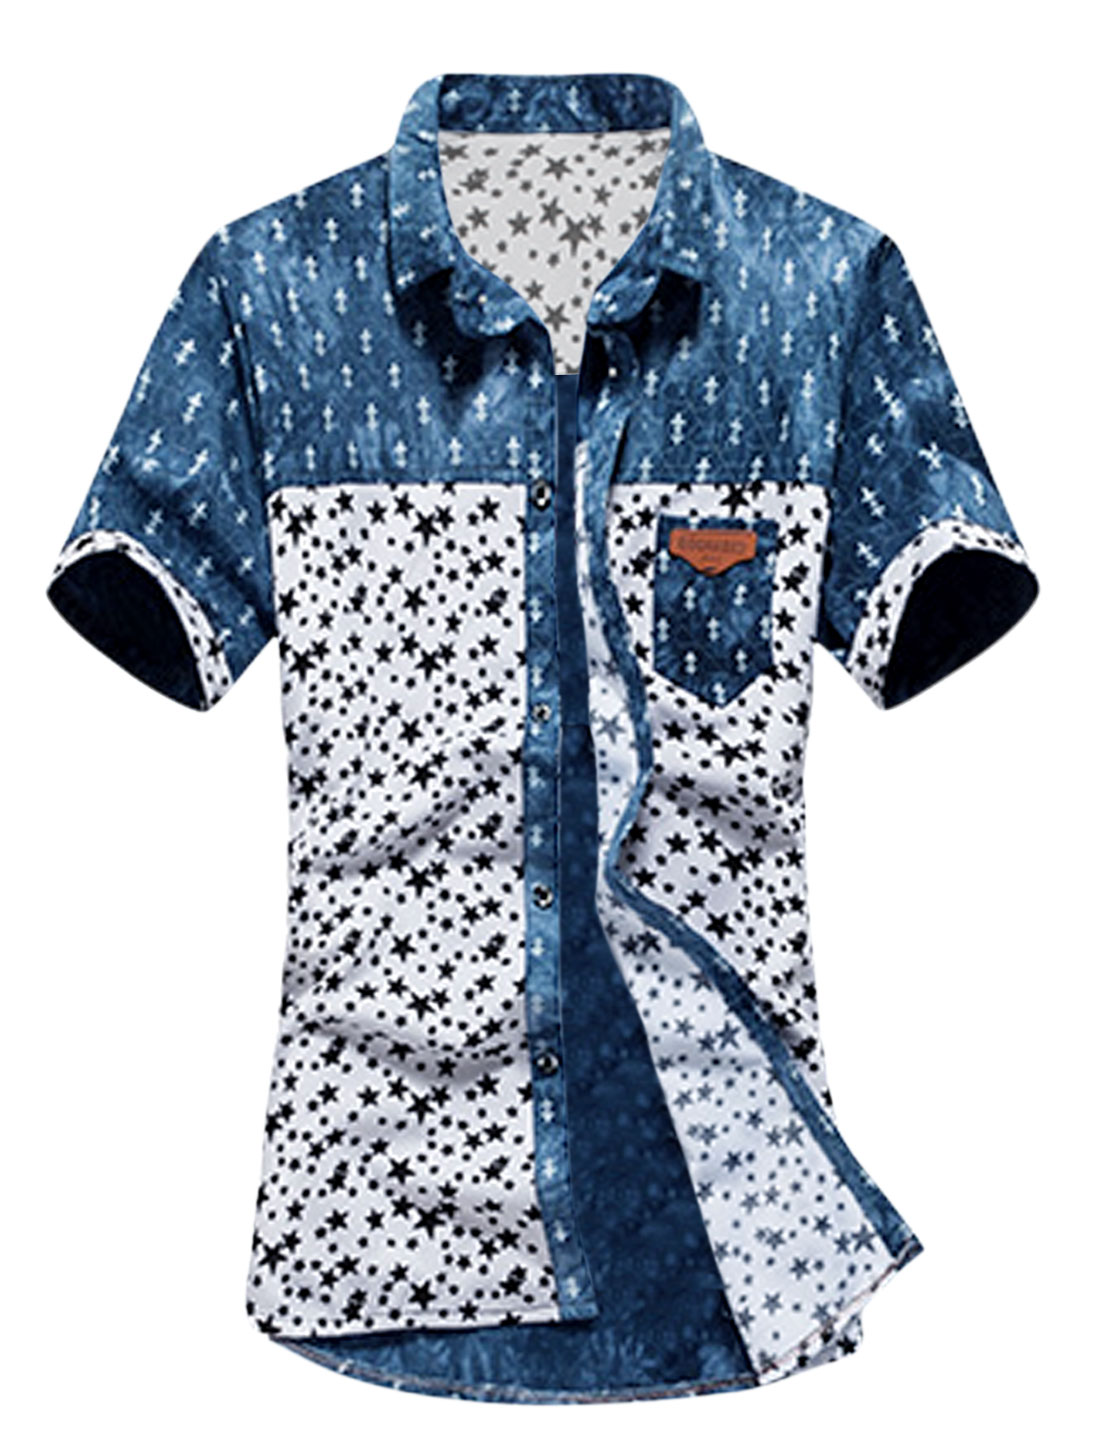 Men Short Sleeve Pocket Button Up Stars Prints Shirt White Navy Blue S